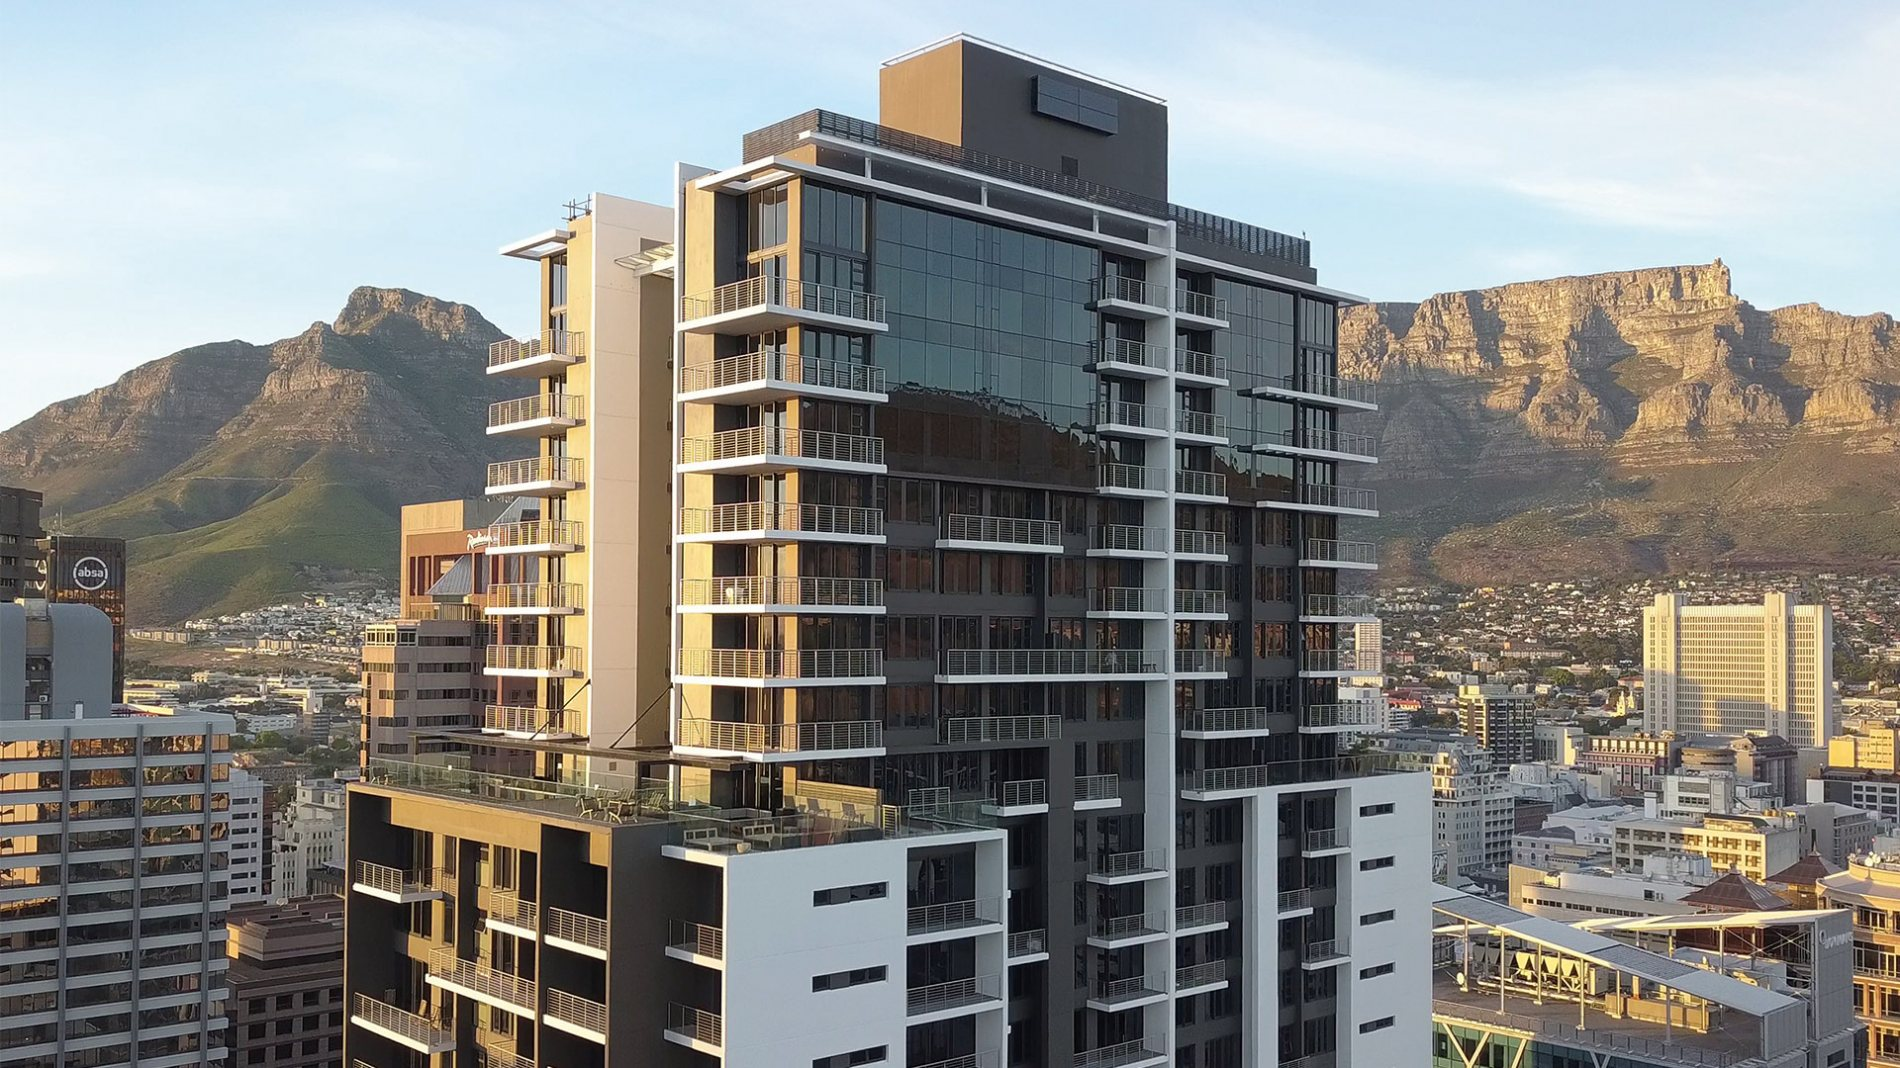 FWJK developments challenges cutting-edge structural engineering